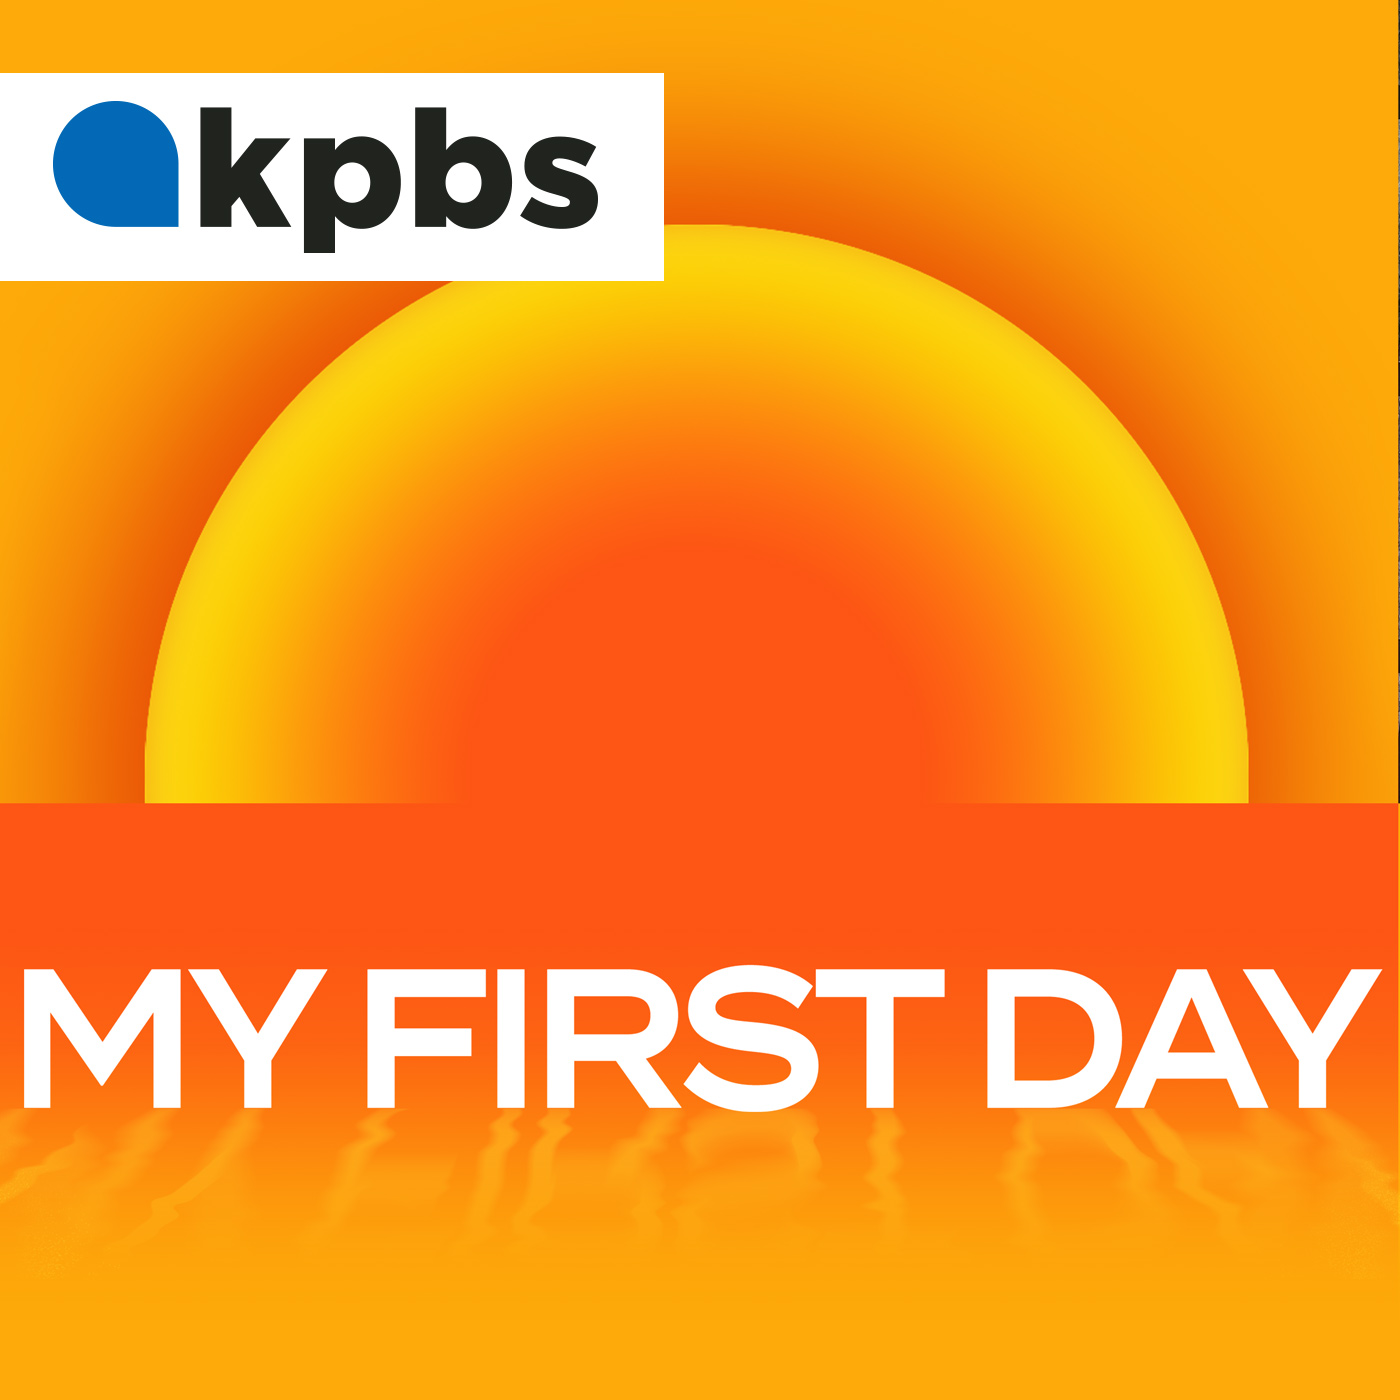 My First Day logo